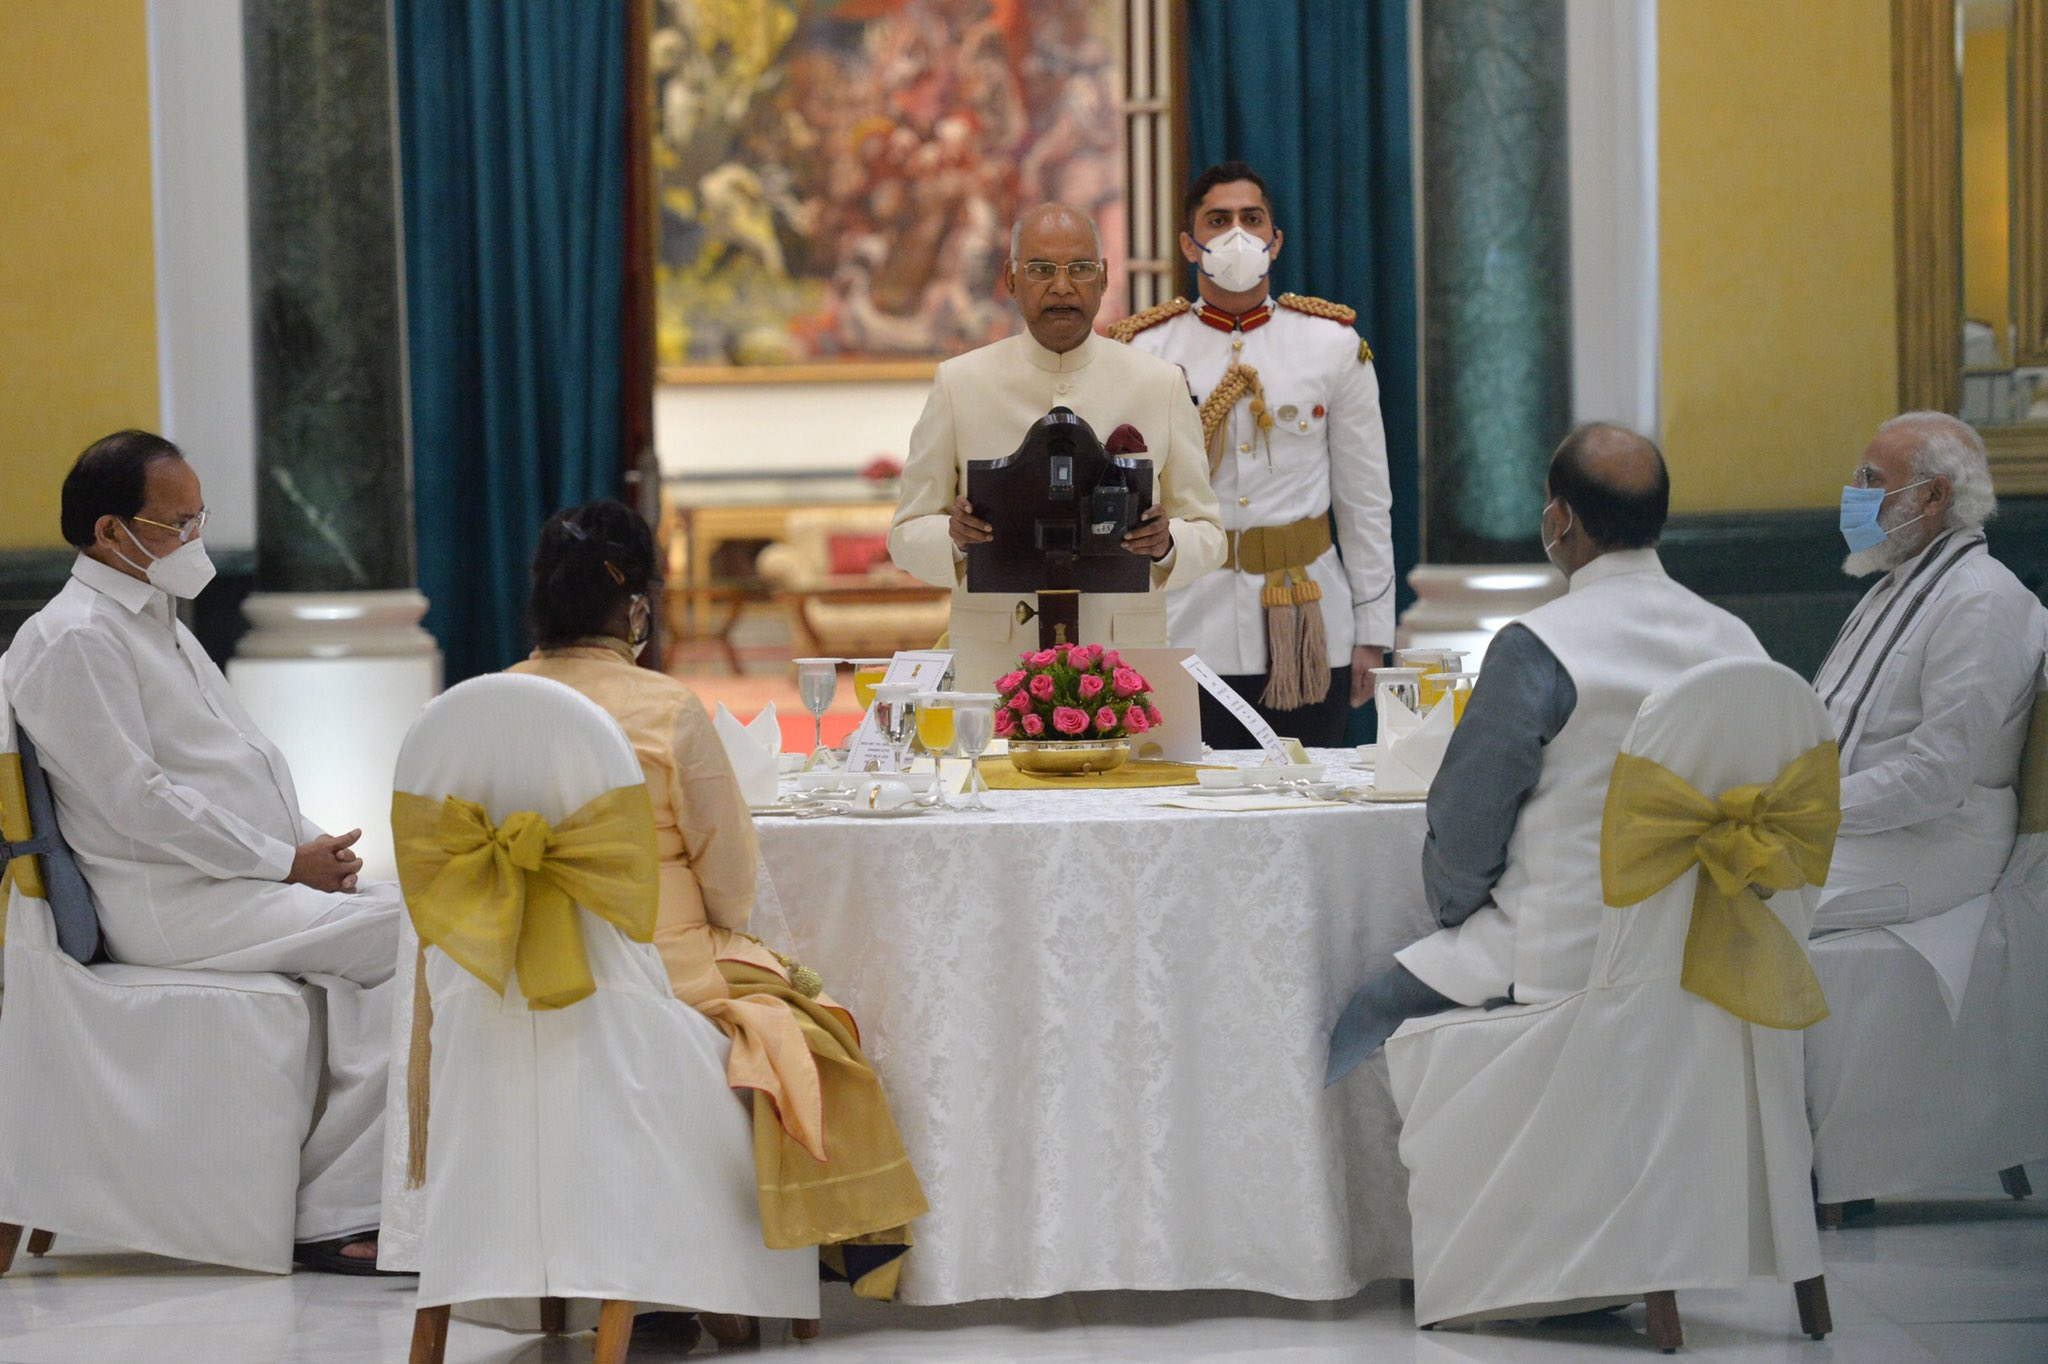 President Kovind hosted 'At Home' reception on Independence Day at Rashtrapati Bhavan. The President invited some frontline Corona Warriors working in Delhi as special guests and lauded their courage and dedication in saving countless lives across the country.